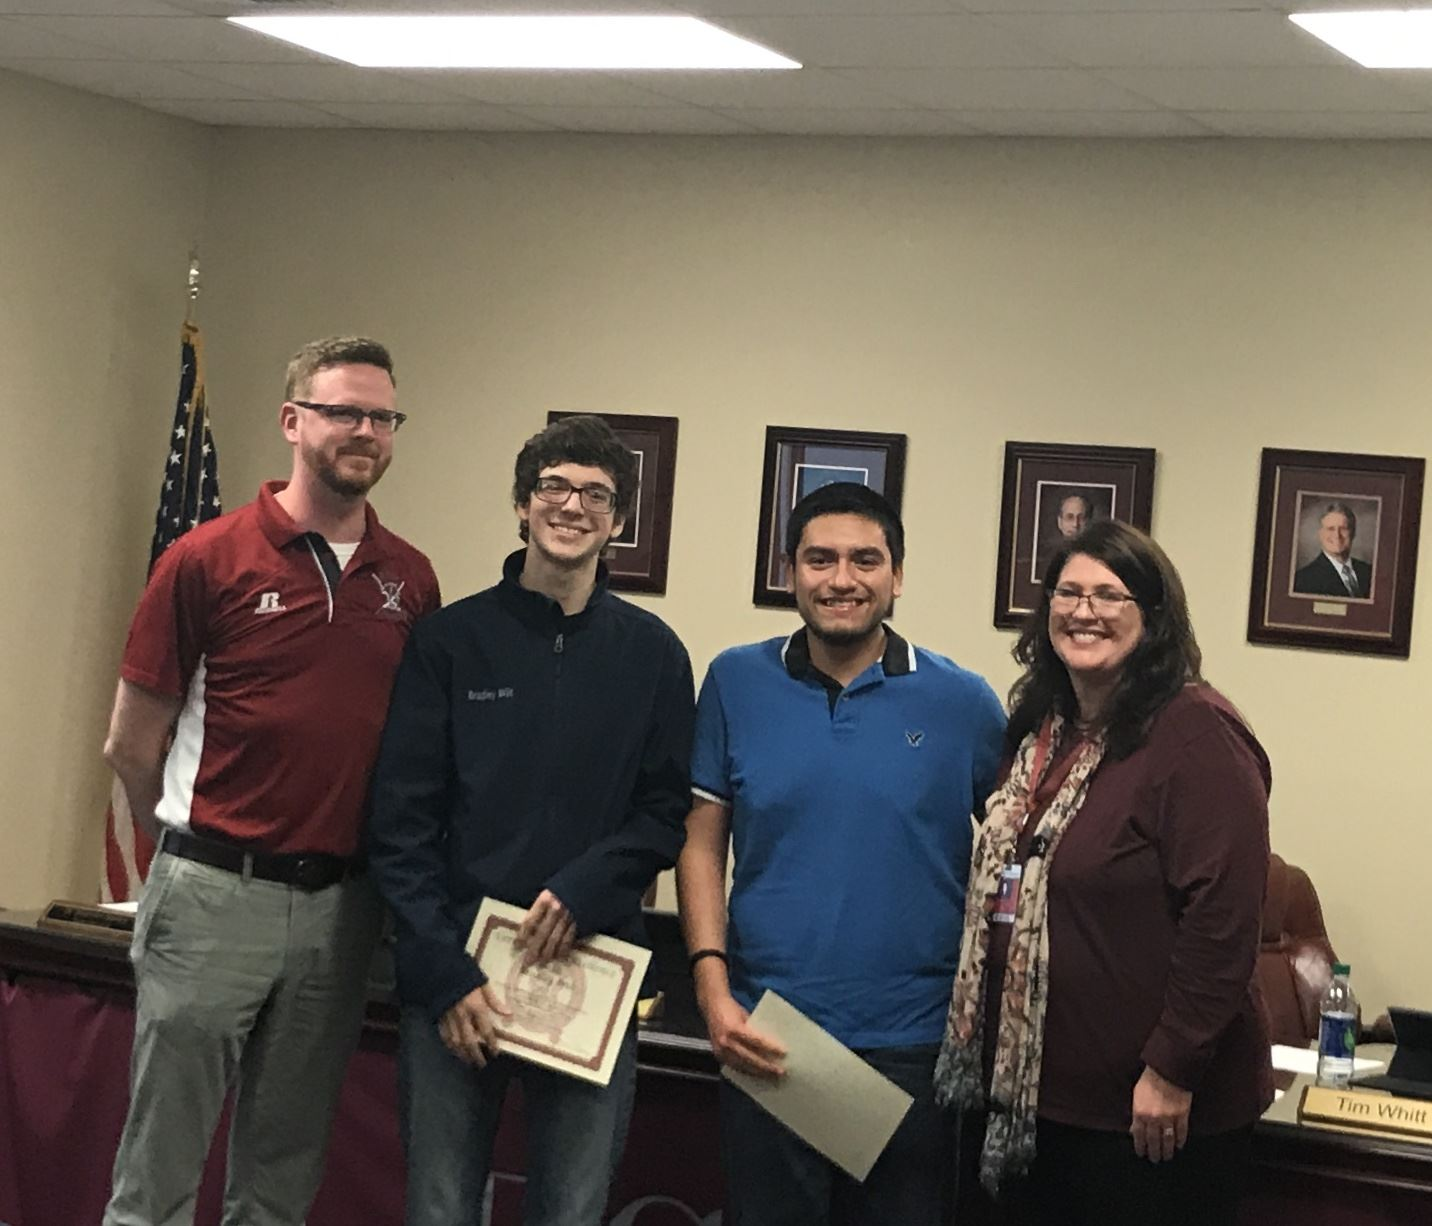 David Dimas and Bradley Wilt were selected for All-State Band.  They are also participating in the Spirit of Atlanta Drum and Bugle Corps.